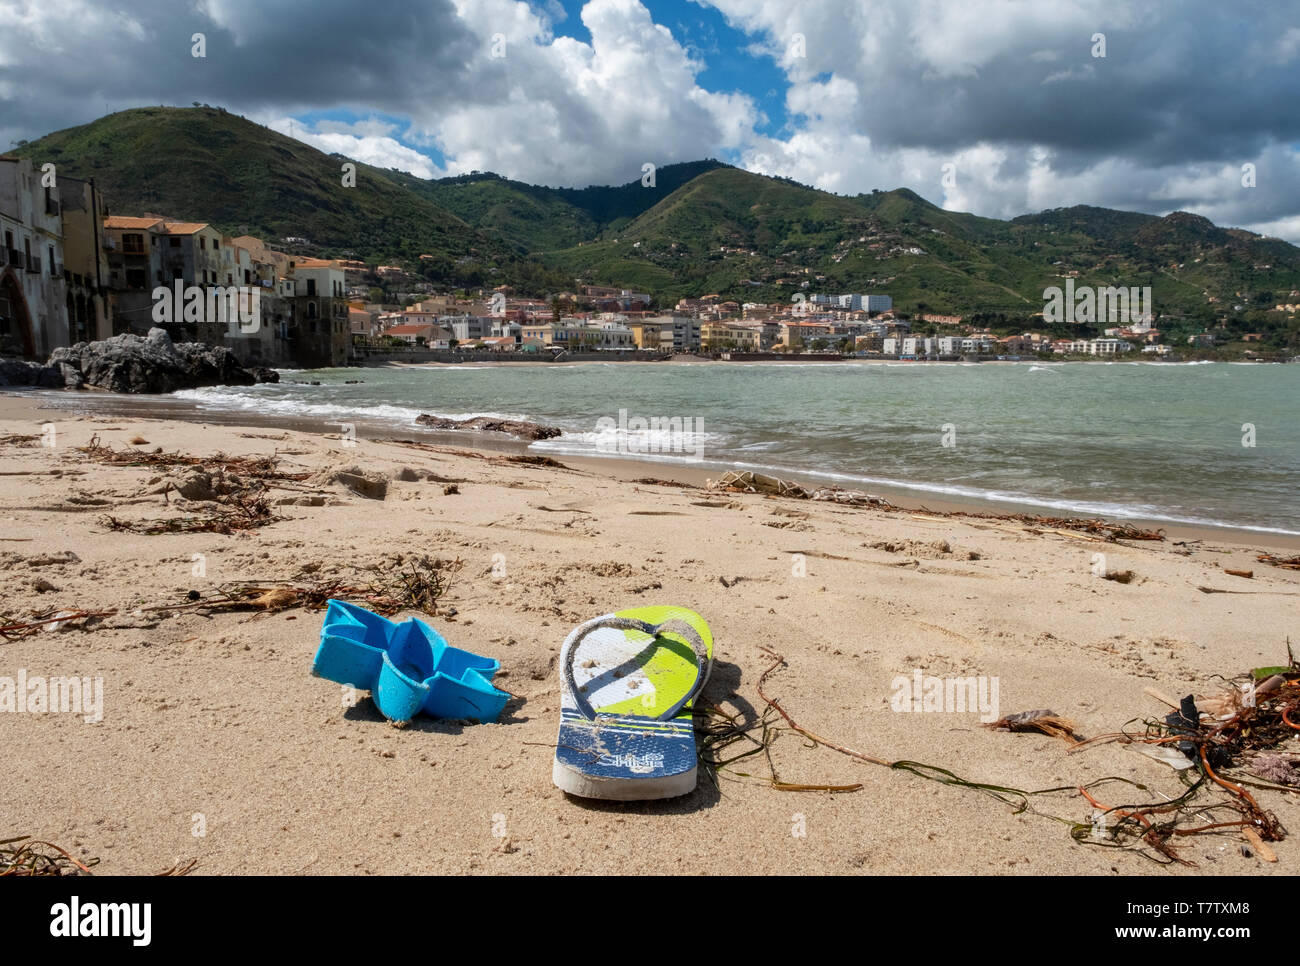 Flip flop and seaweed washed up on the beach at Cefalu, Sicily. - Stock Image